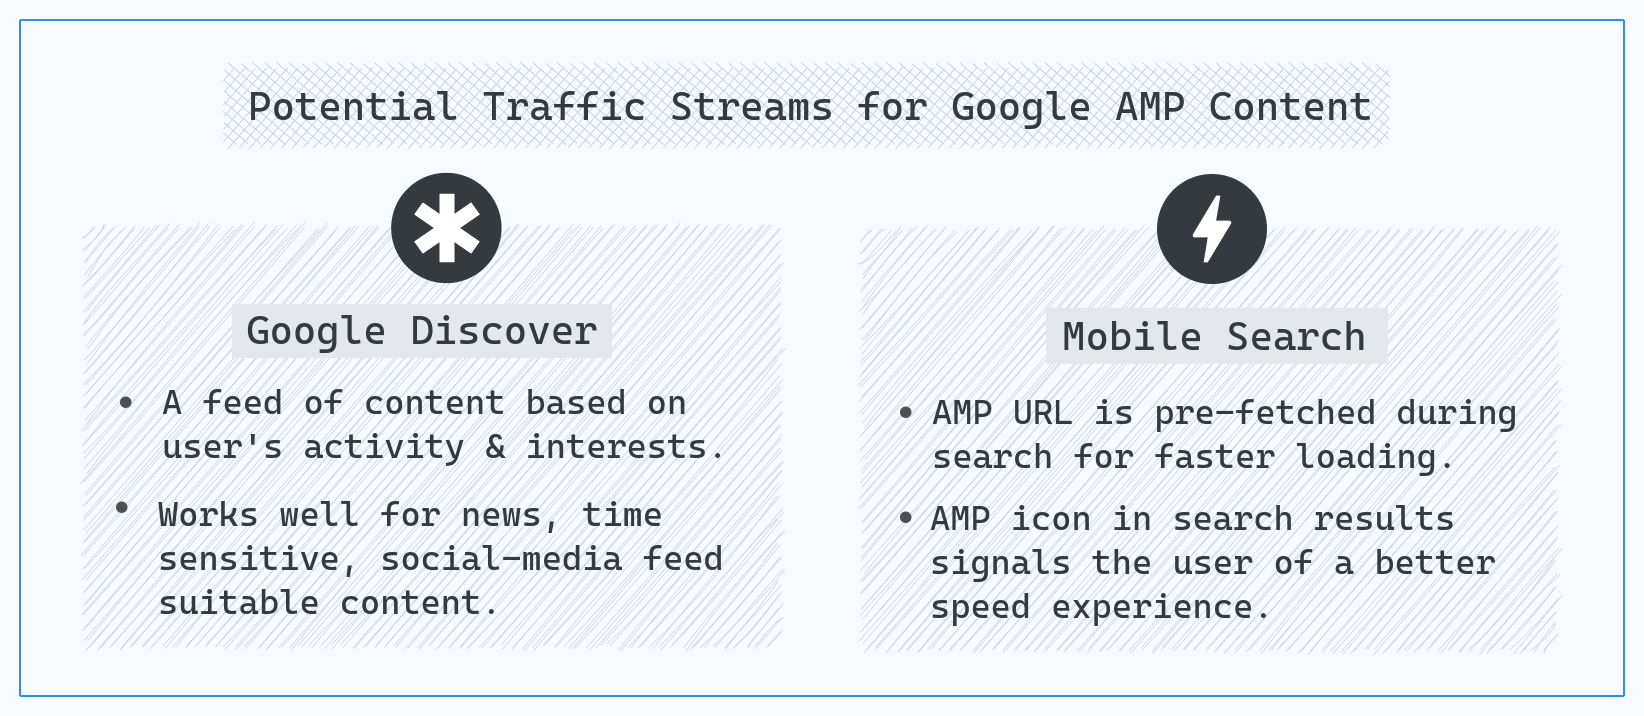 Potential traffic streams for Google AMP content